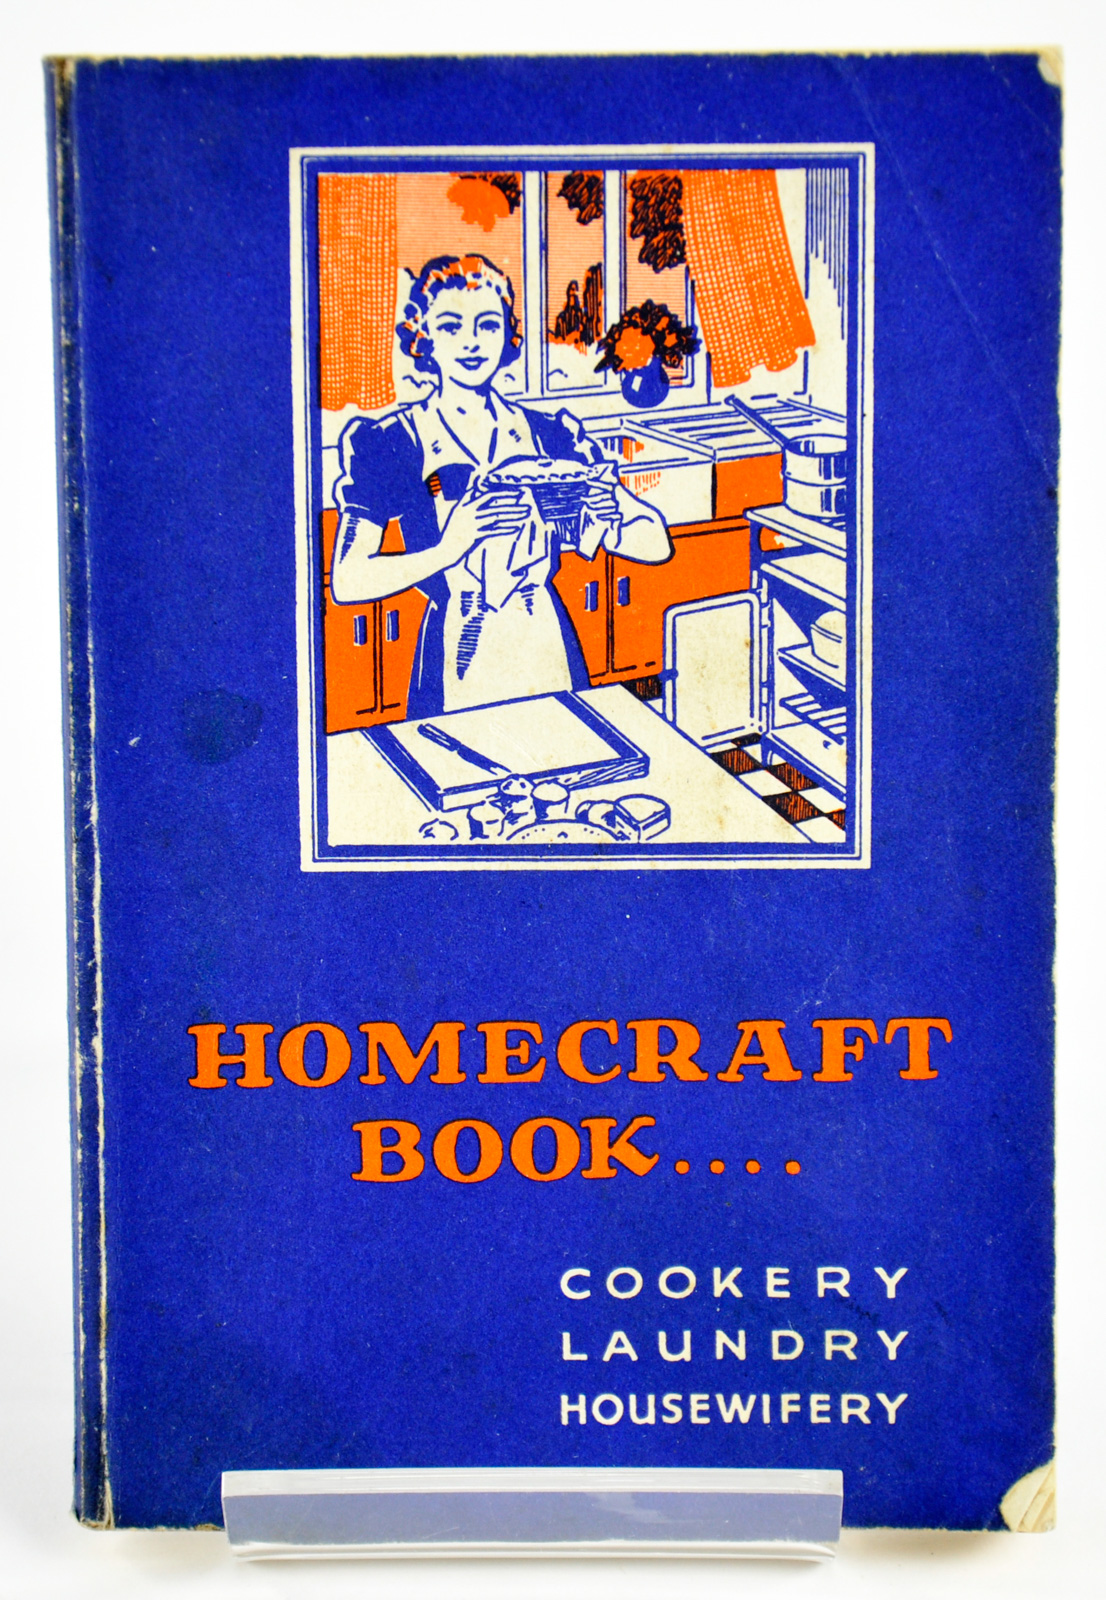 Homecraft Book: Cookery, Laundry, Midwifery, 1930s, depicting a sketch of a woman baking in the kitchen on the front cover